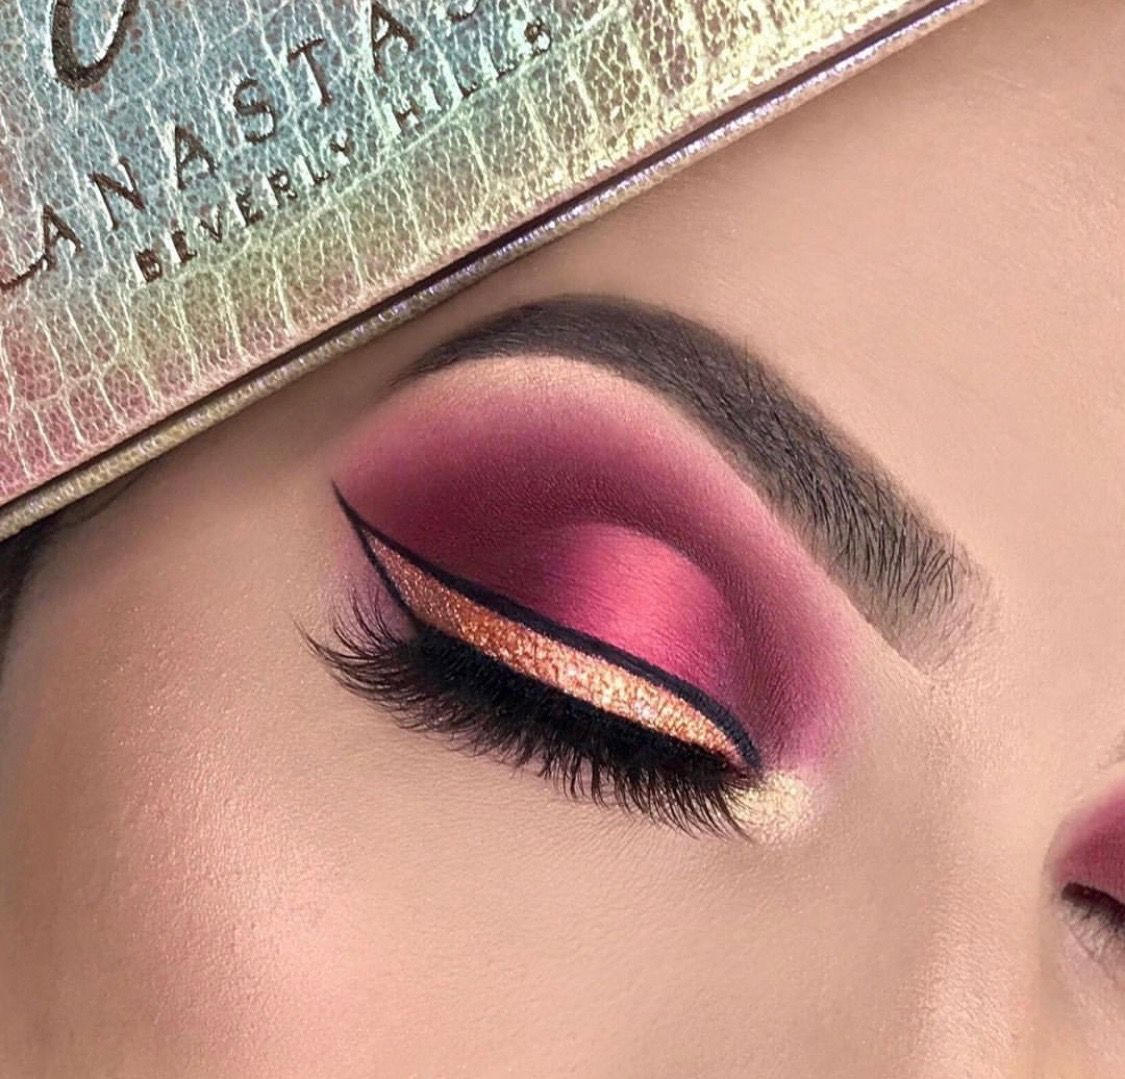 Pin by Chris P on Makeup Products (With images) Makeup